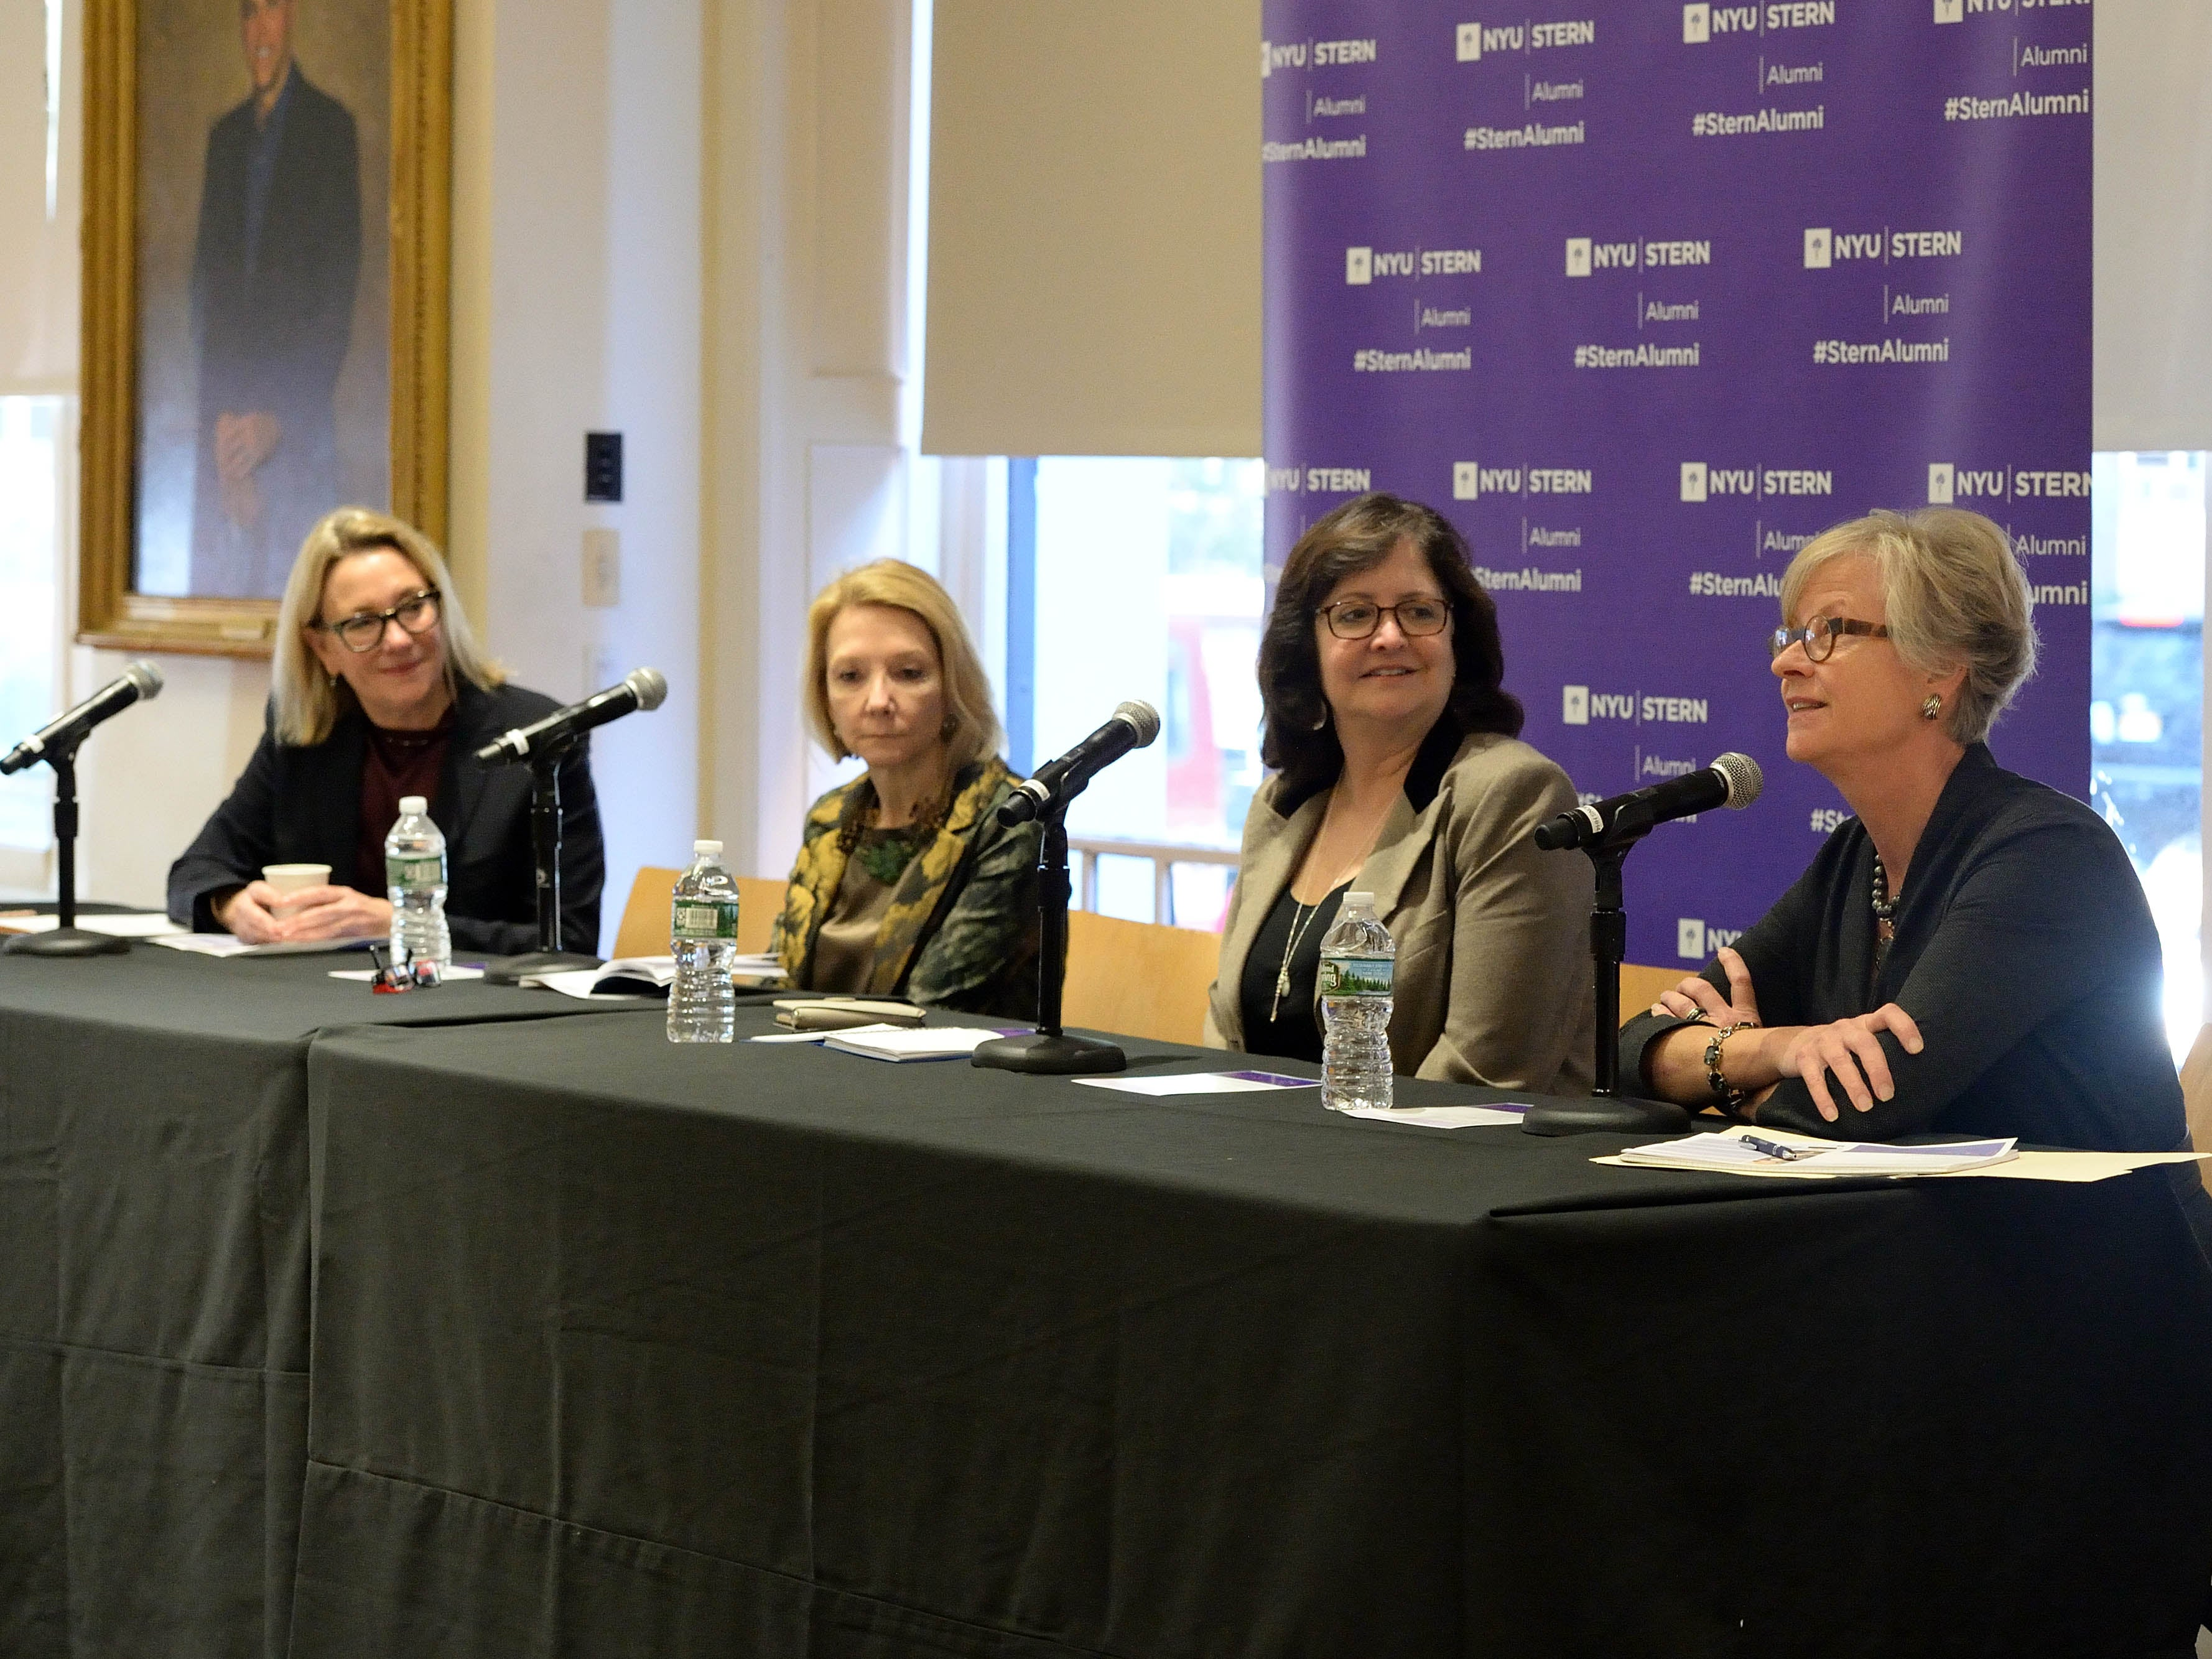 Candid photo of a panel discussion from NYU Alumni Day where SWIB was featured